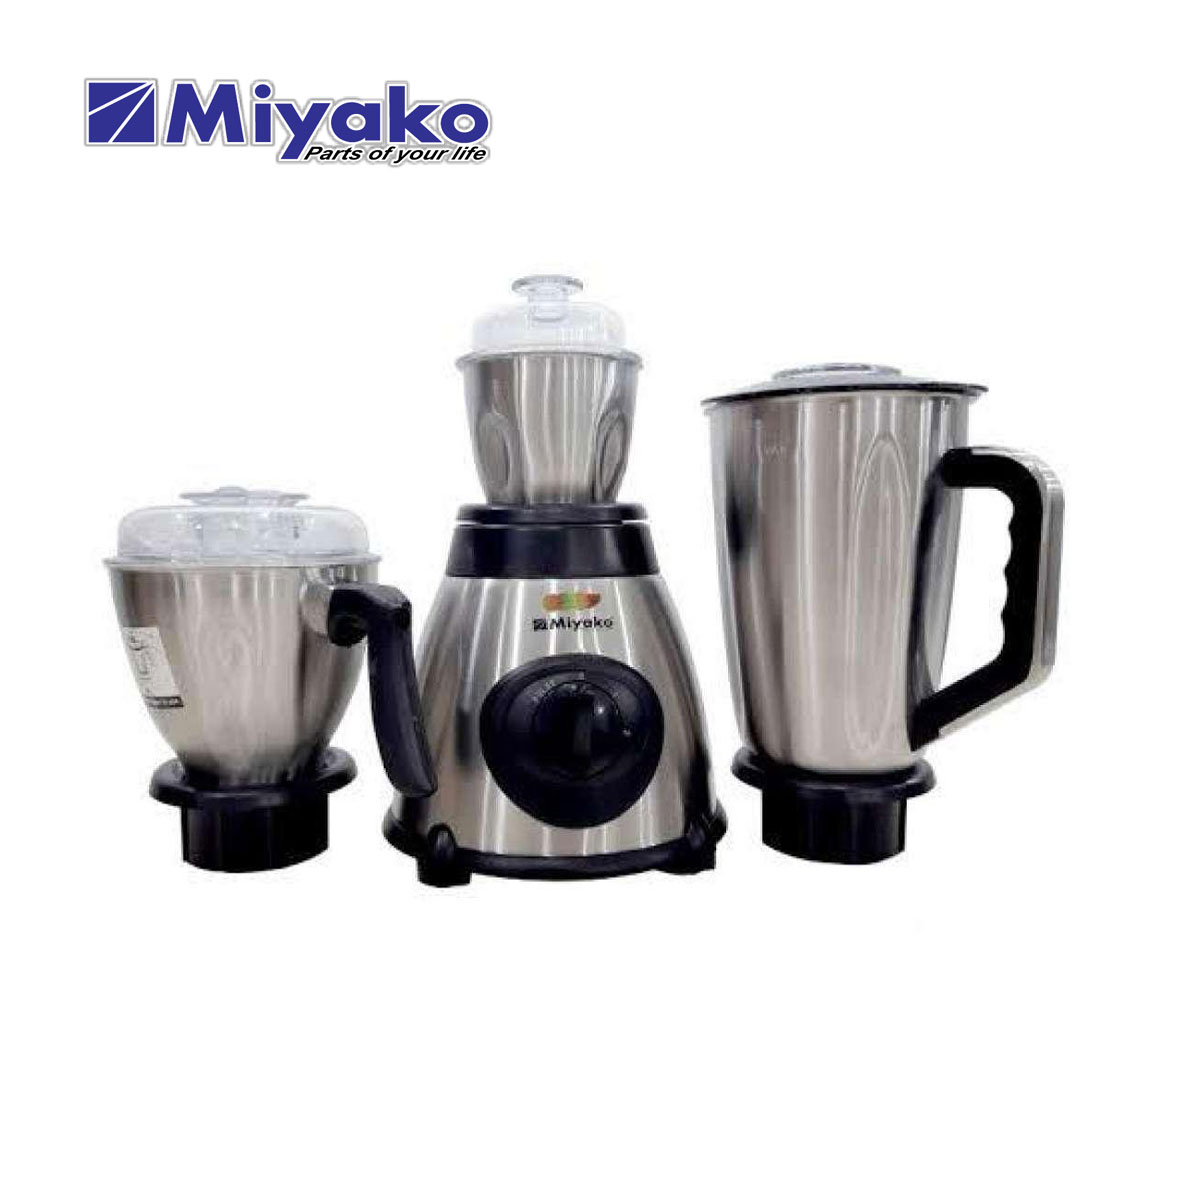 Miyako 600 watt Steel Blander Havy Duty Powerful motor